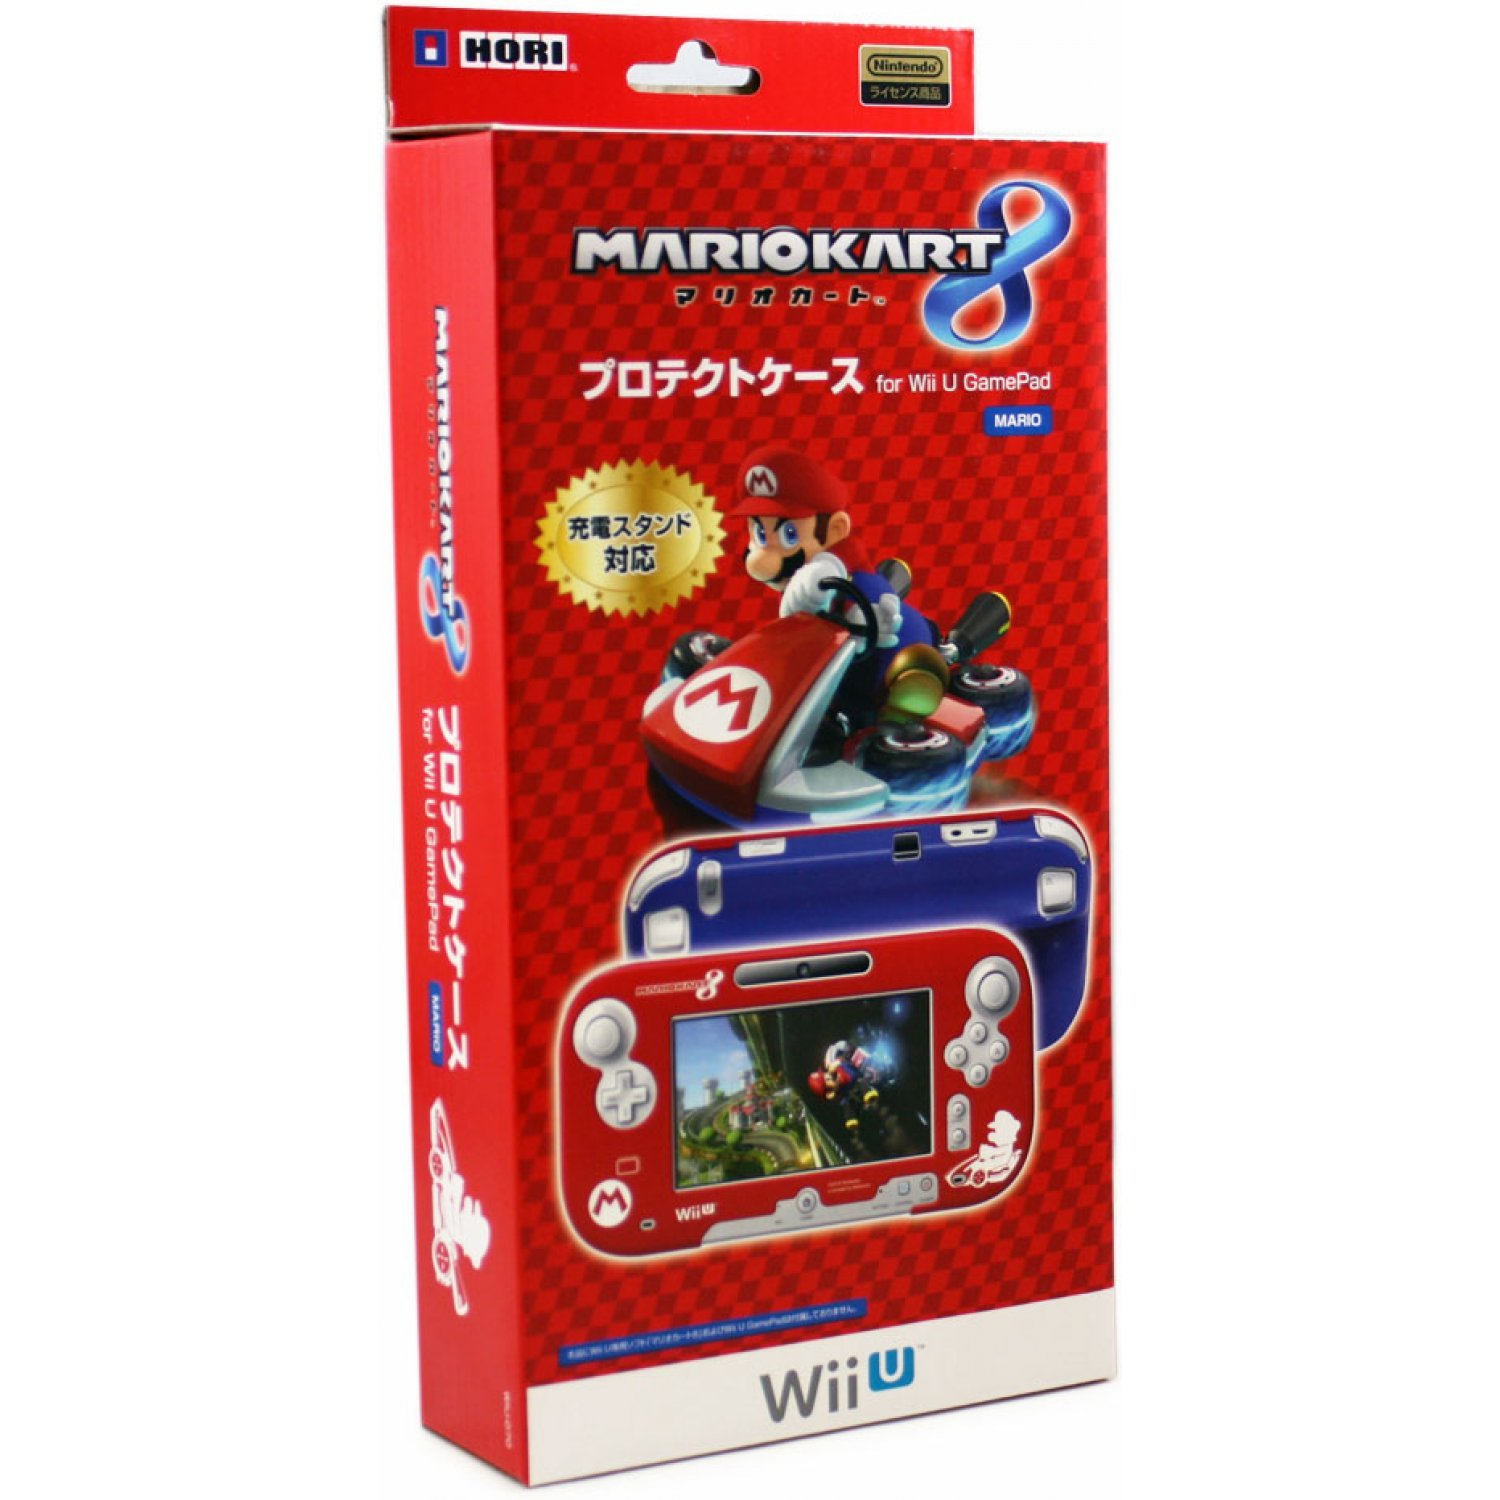 mario kart 8 protect case for wii u gamepad mario. Black Bedroom Furniture Sets. Home Design Ideas